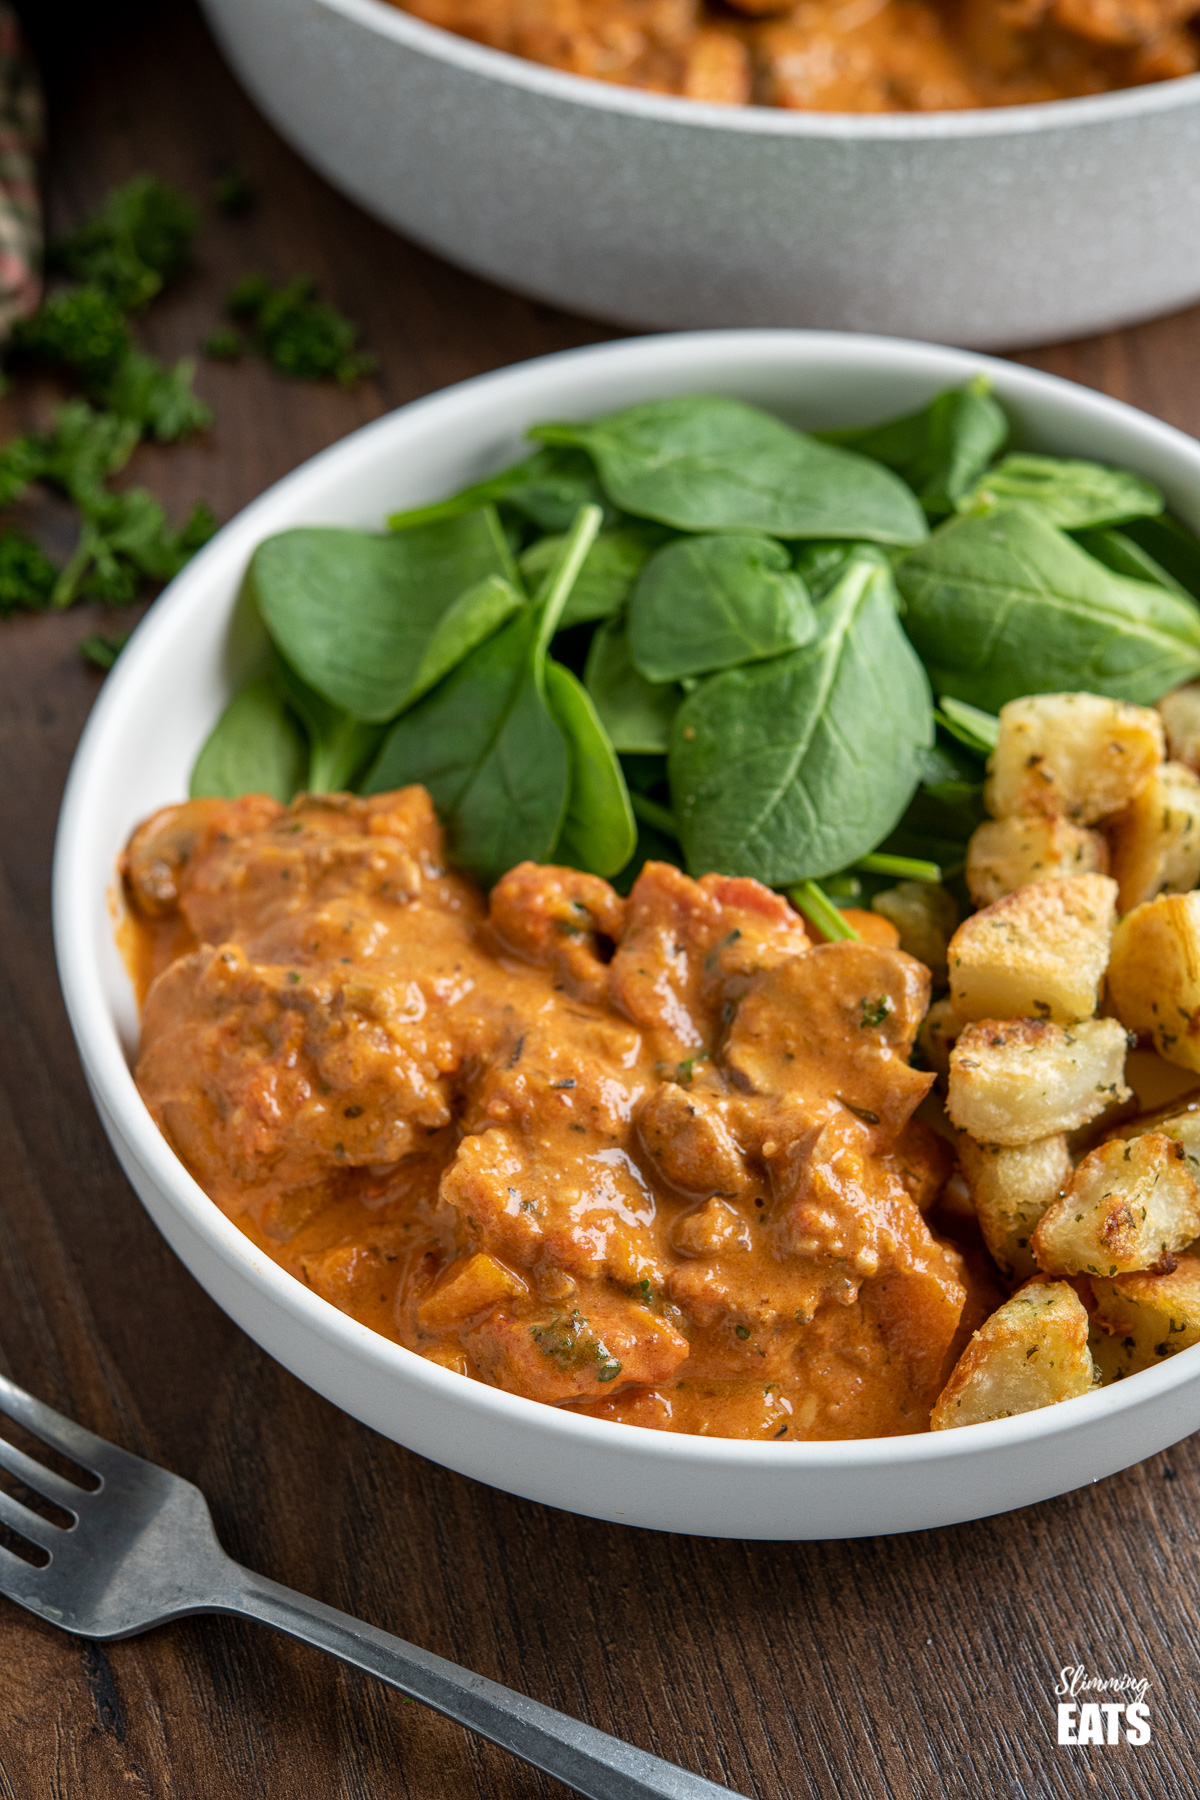 creamy pork casserole in white bowl with garlic and herb potatoes and spinach